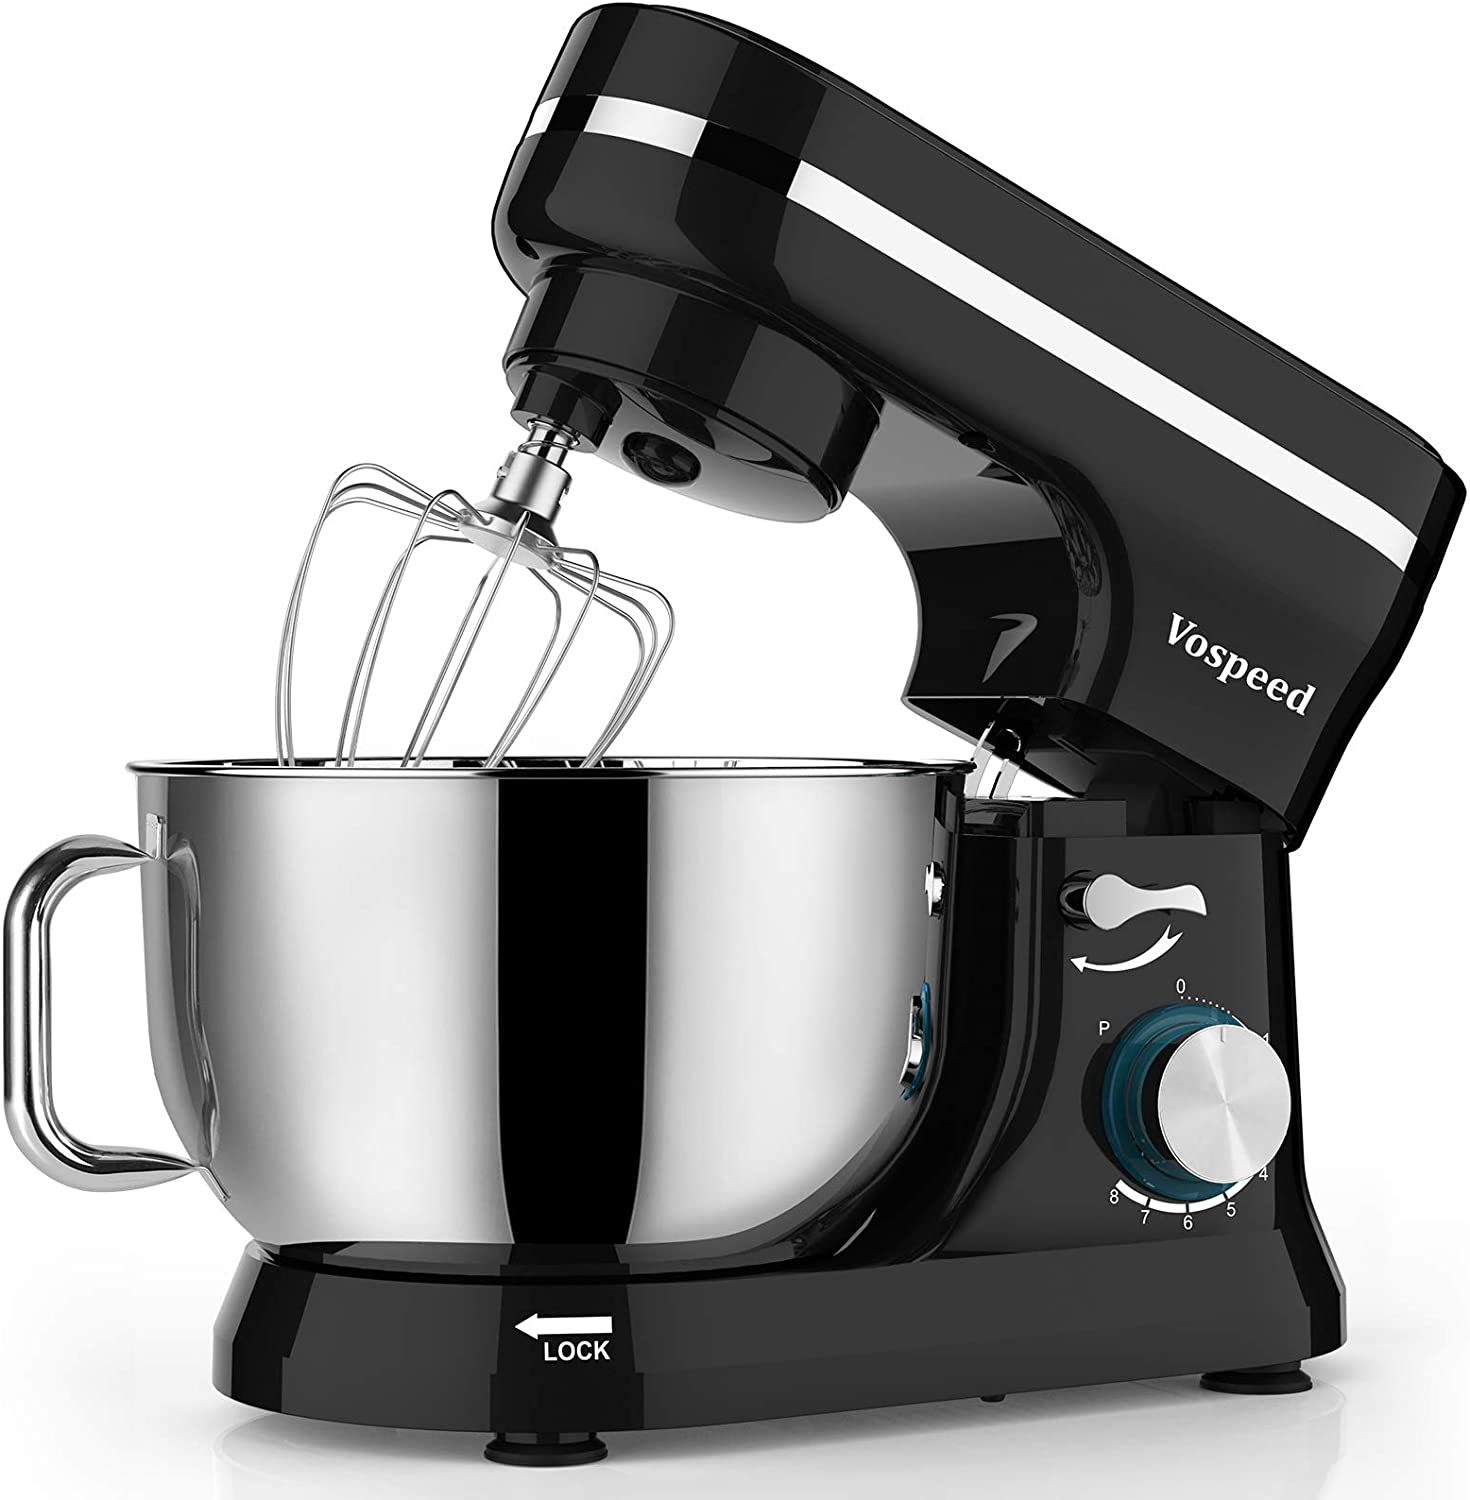 Vospeed Food Stand Mixer Dough Blender for £89.95